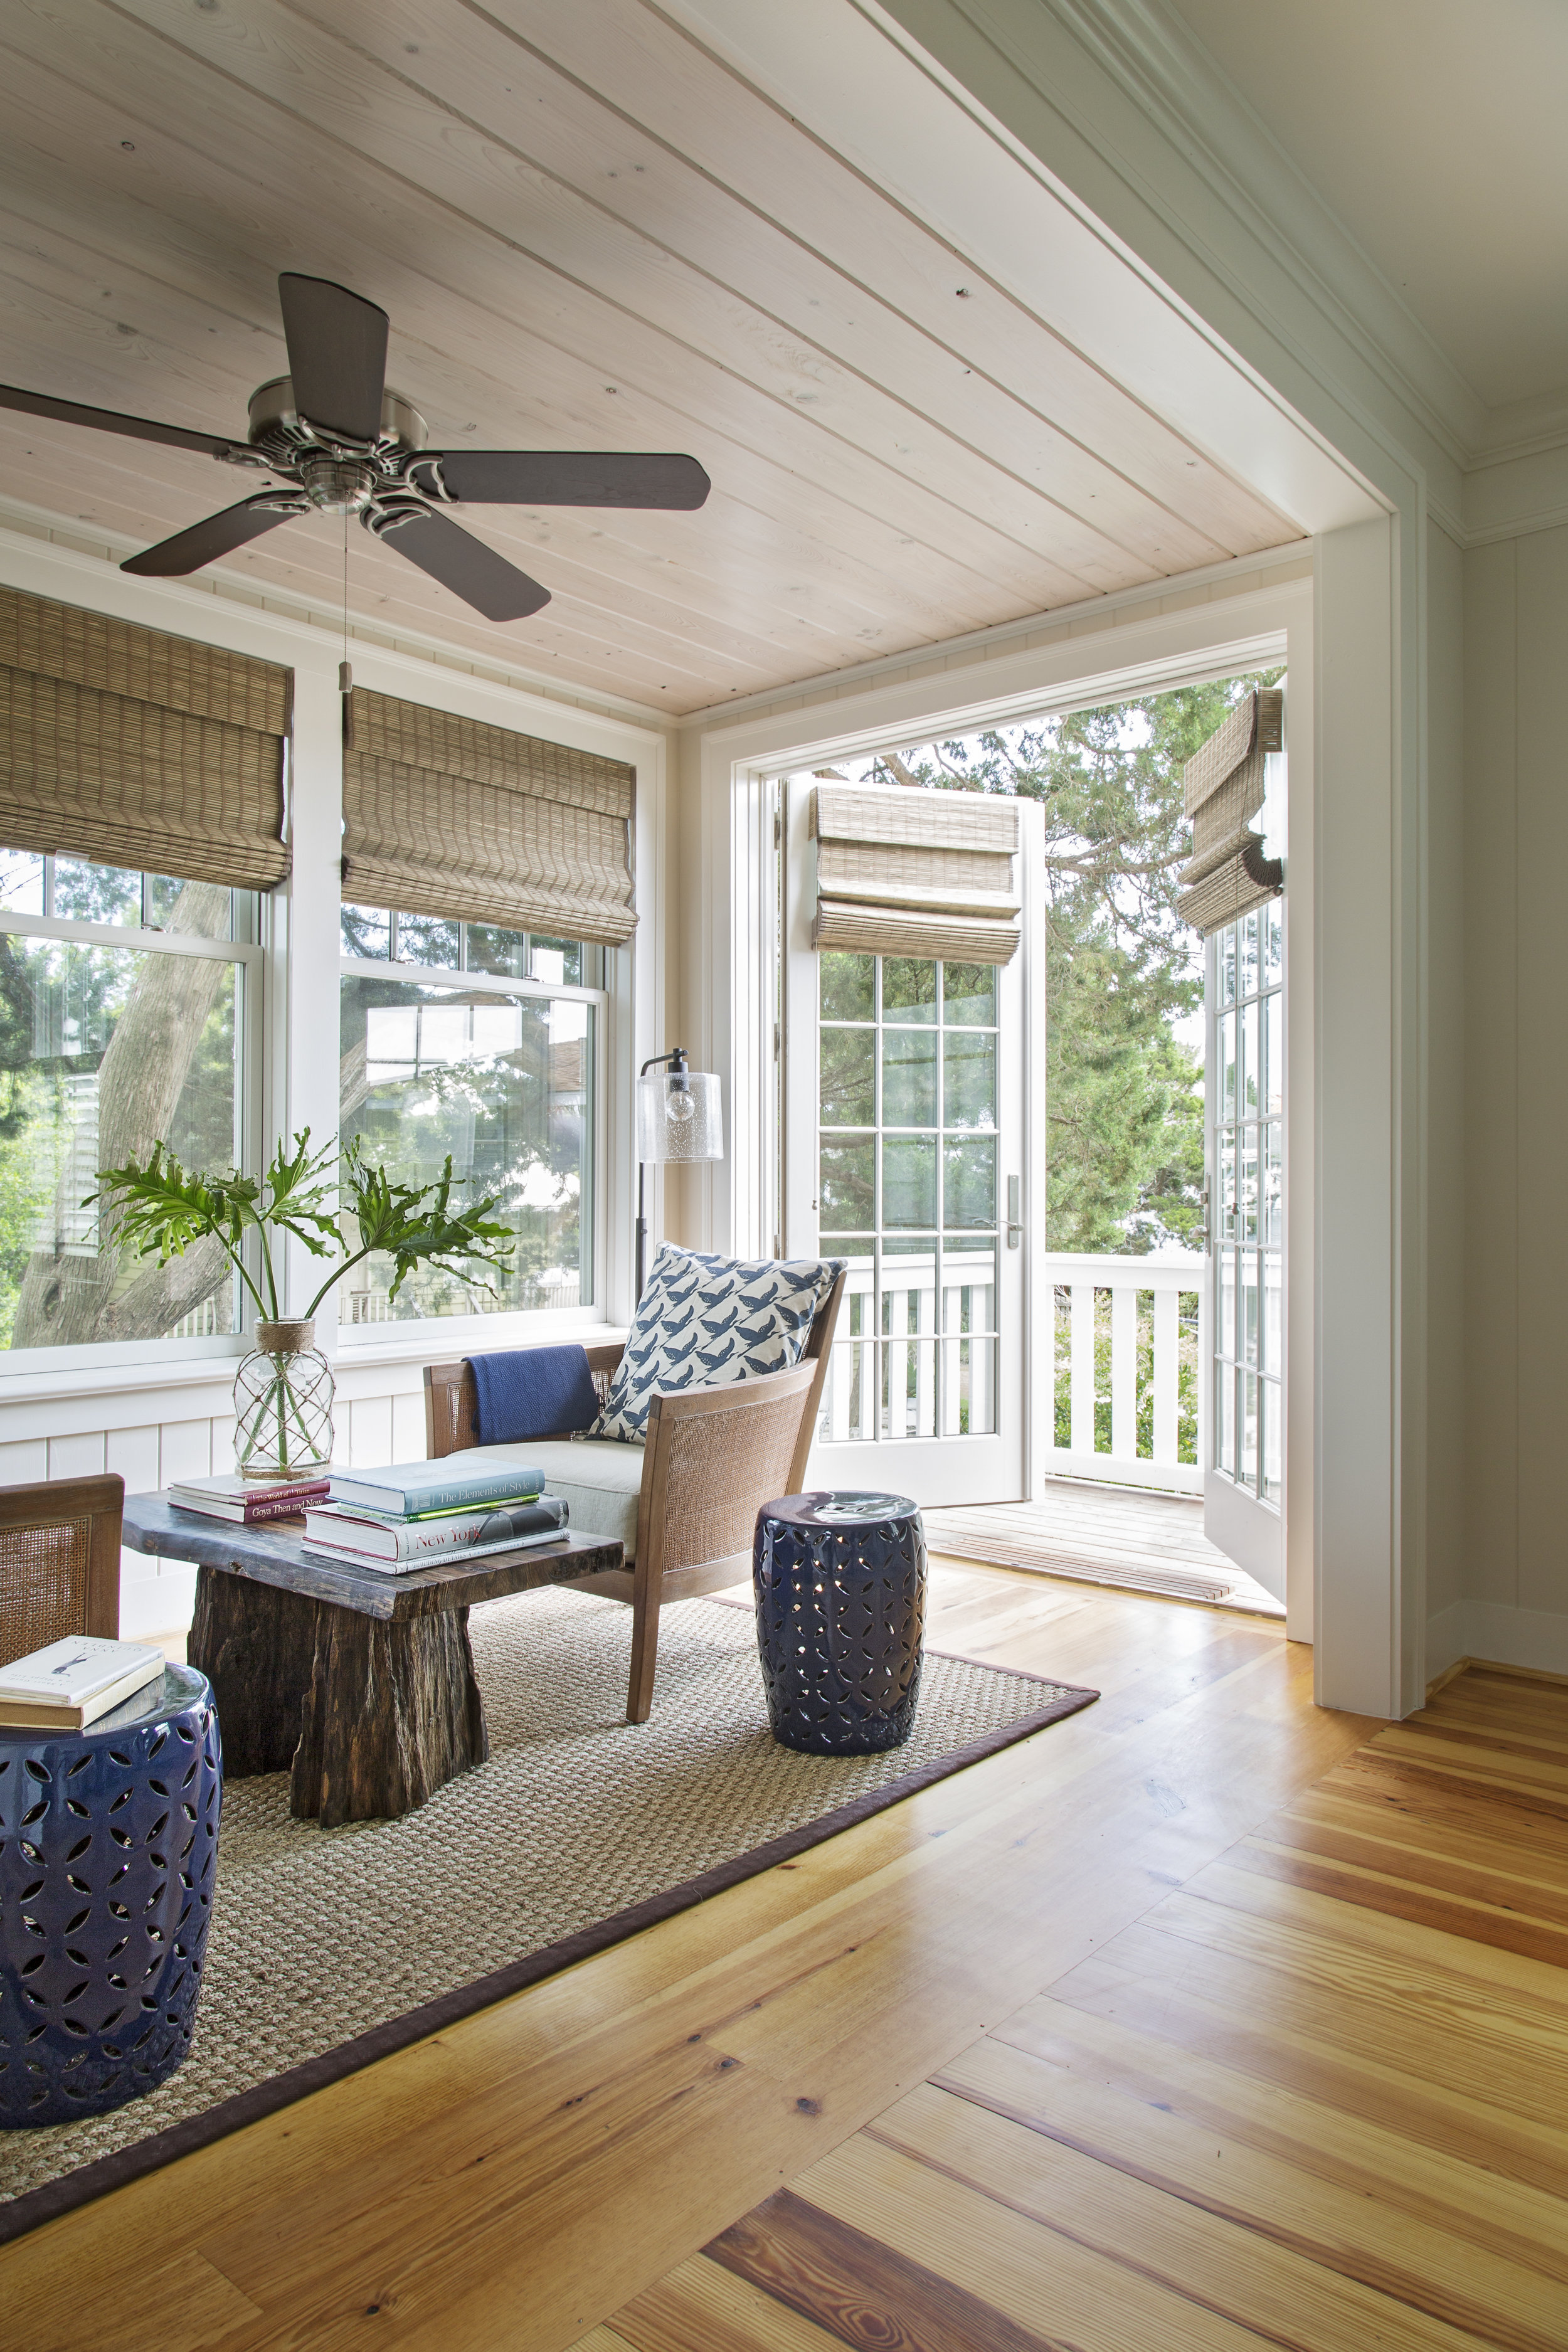 Residential Interior Design Project - Pawleys Island, SC